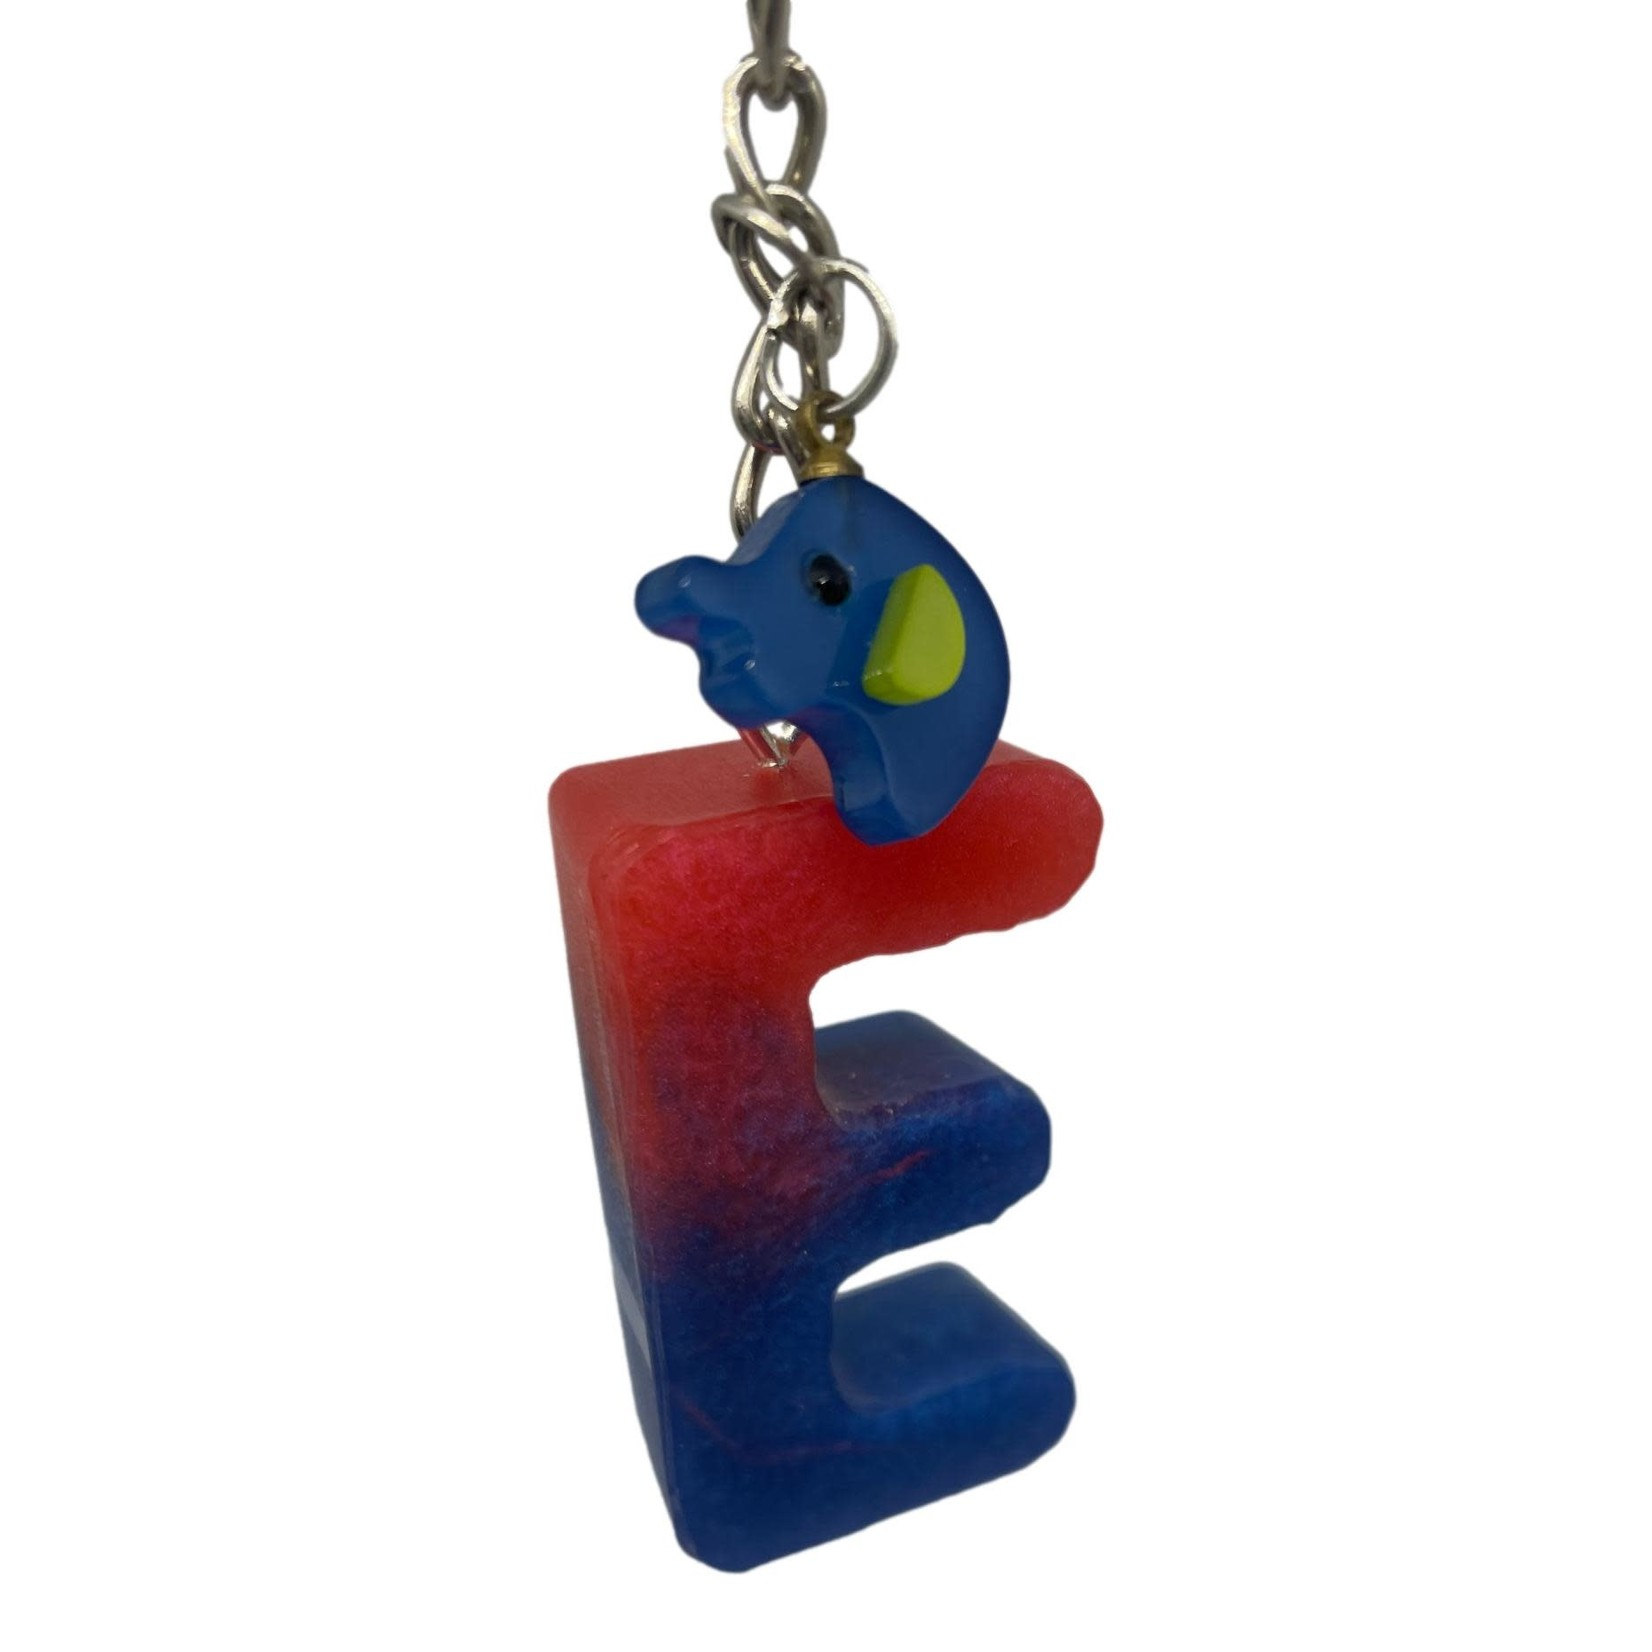 East Coast Sirens Blue and Red Alphabet Key Chain